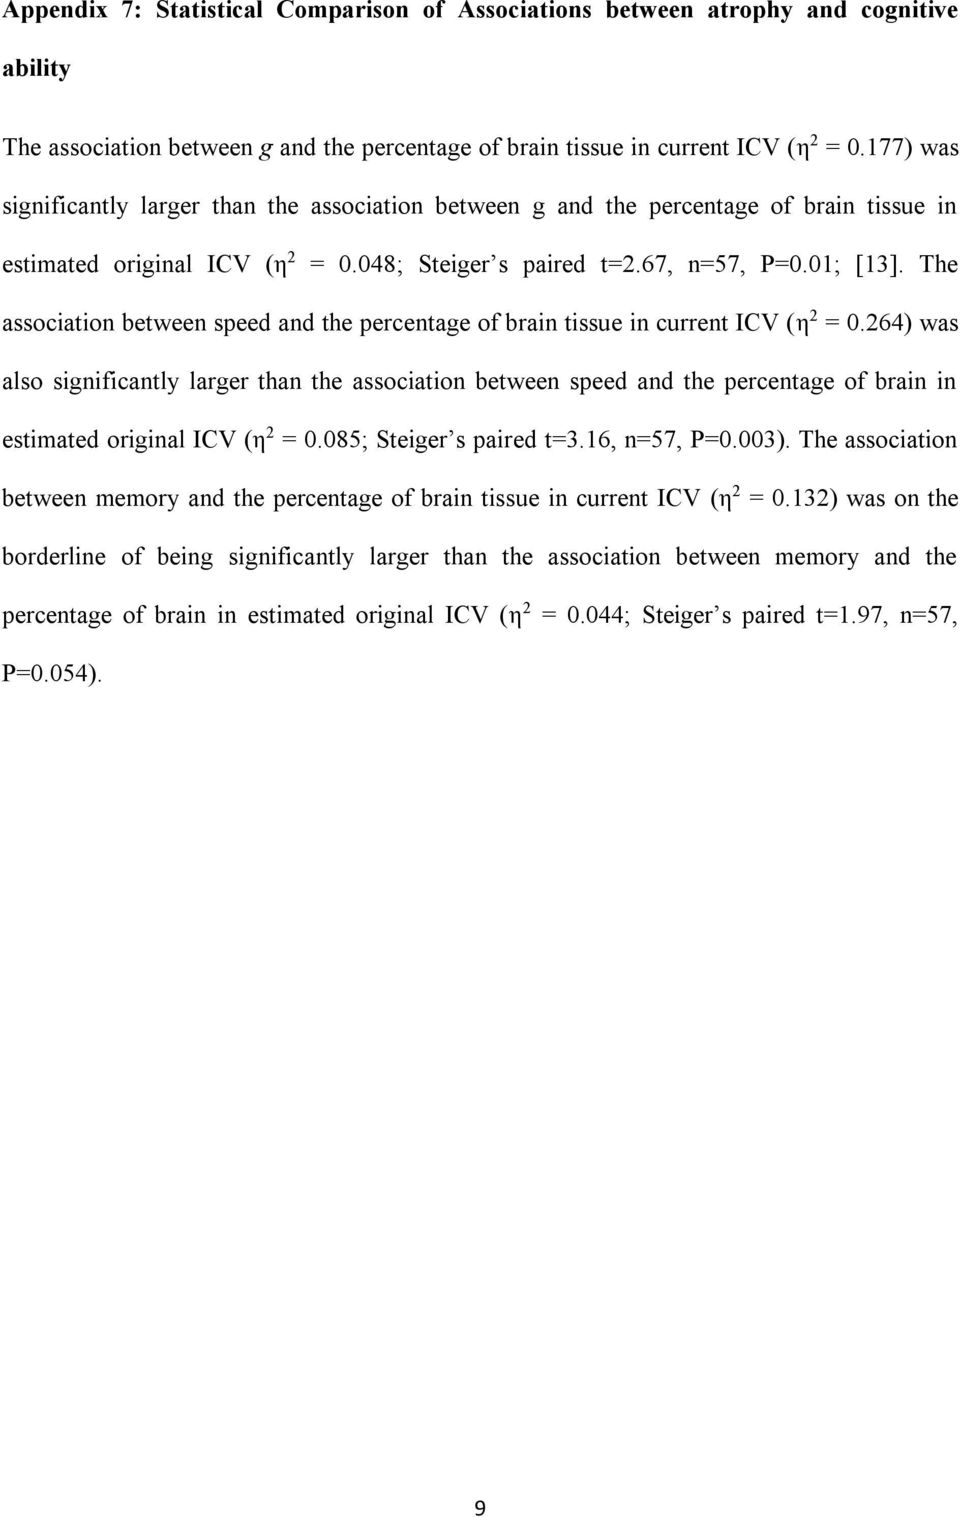 The association between speed and the percentage of brain tissue in current ICV (η 2 = 0.